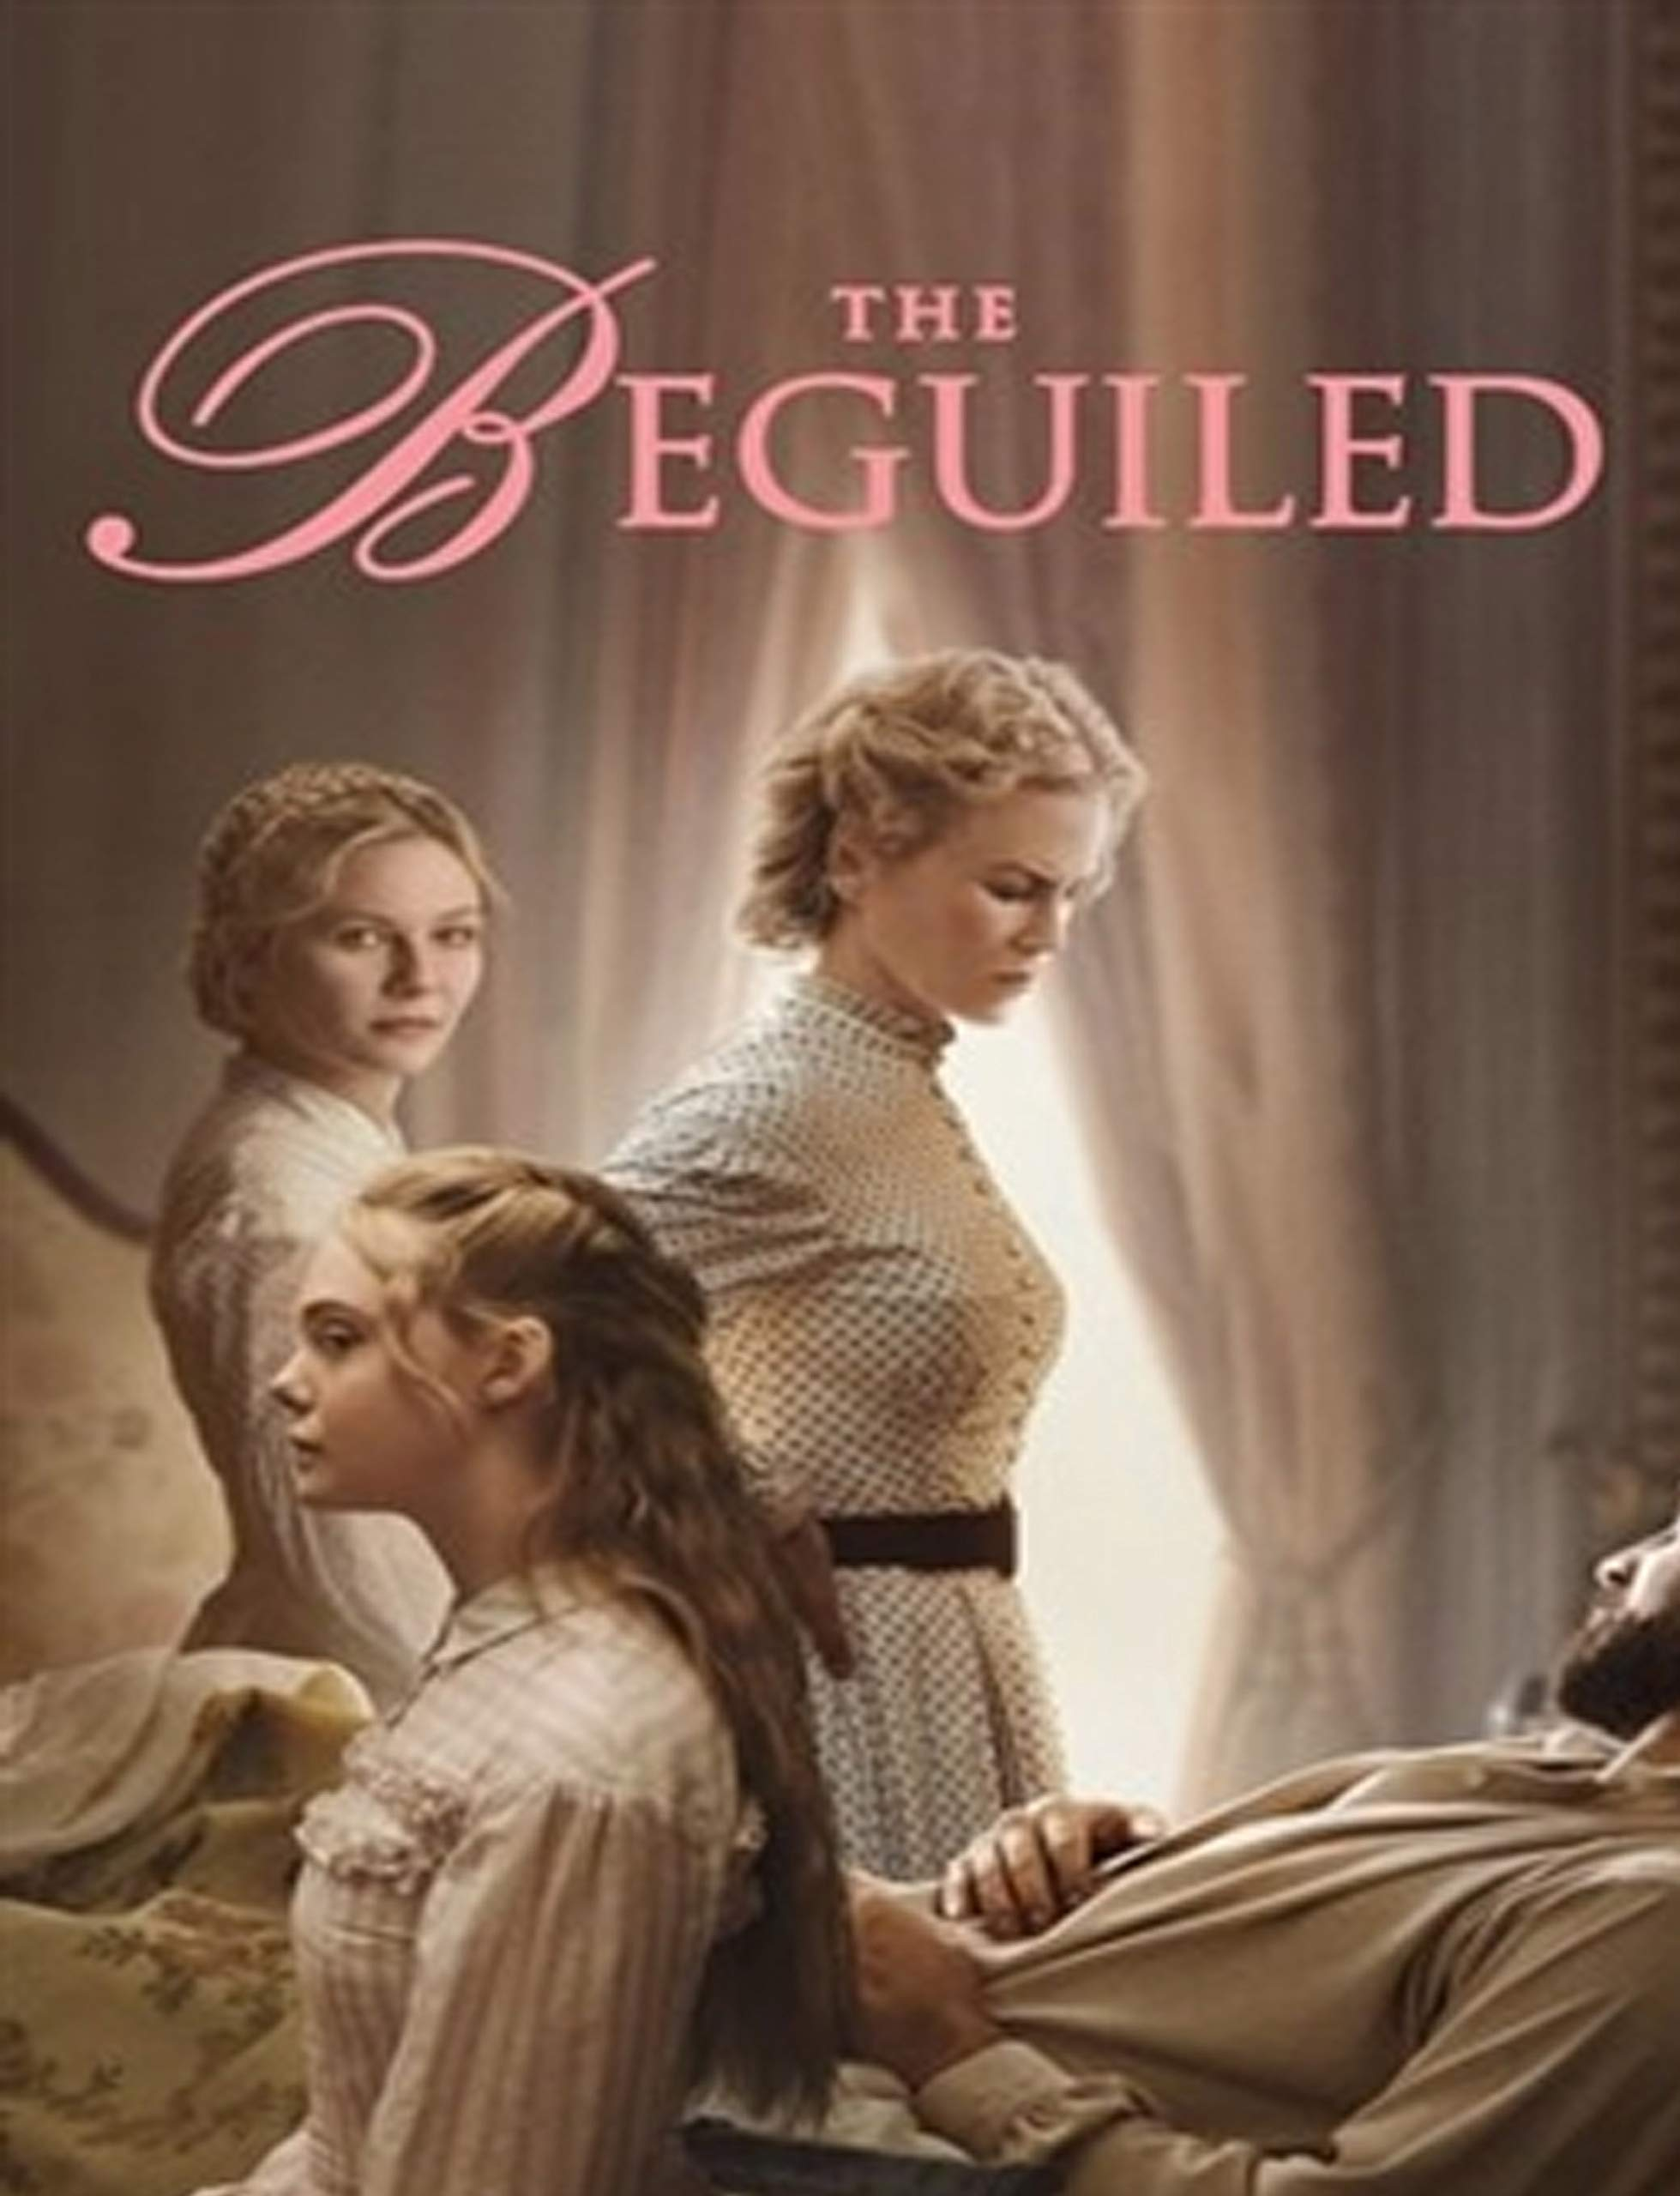 The Beguiled: Screenplay